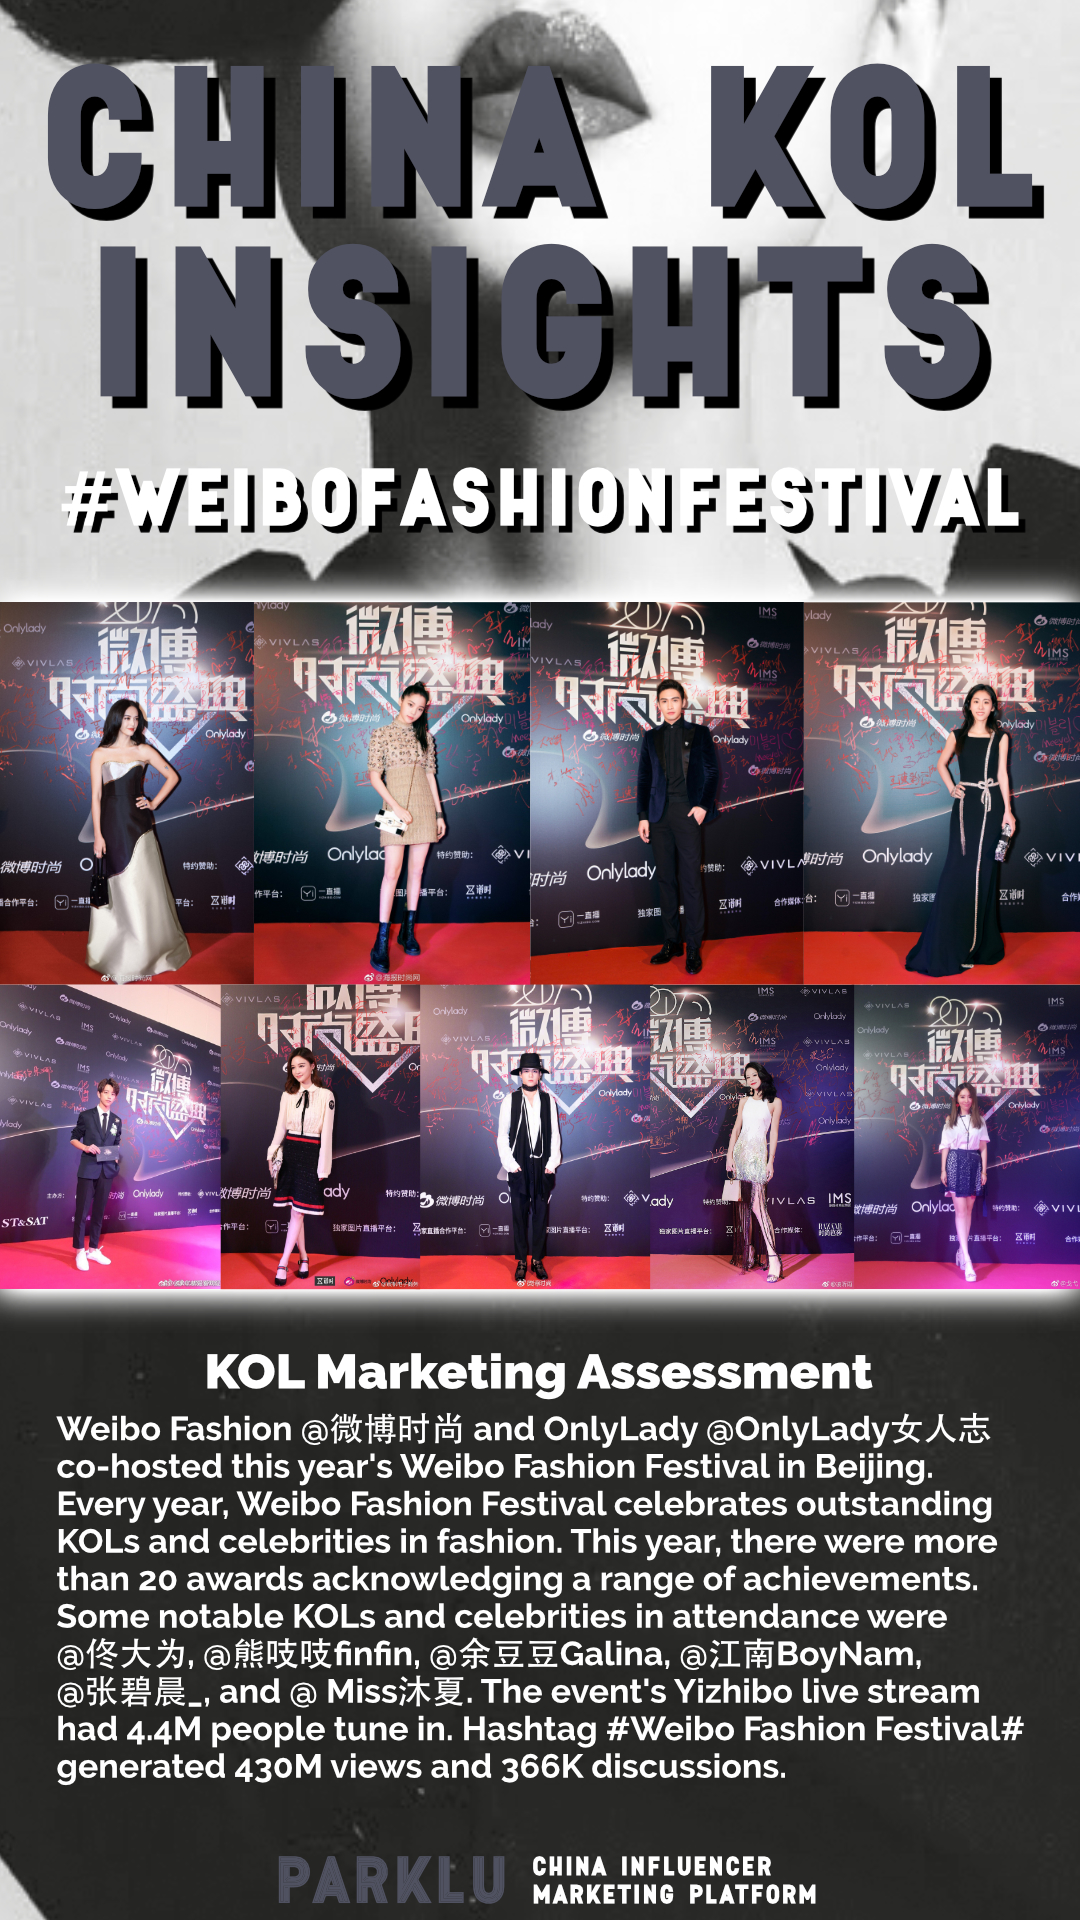 Weibo Fashion Festival Celebrates Fashion KOLs & Celebrities